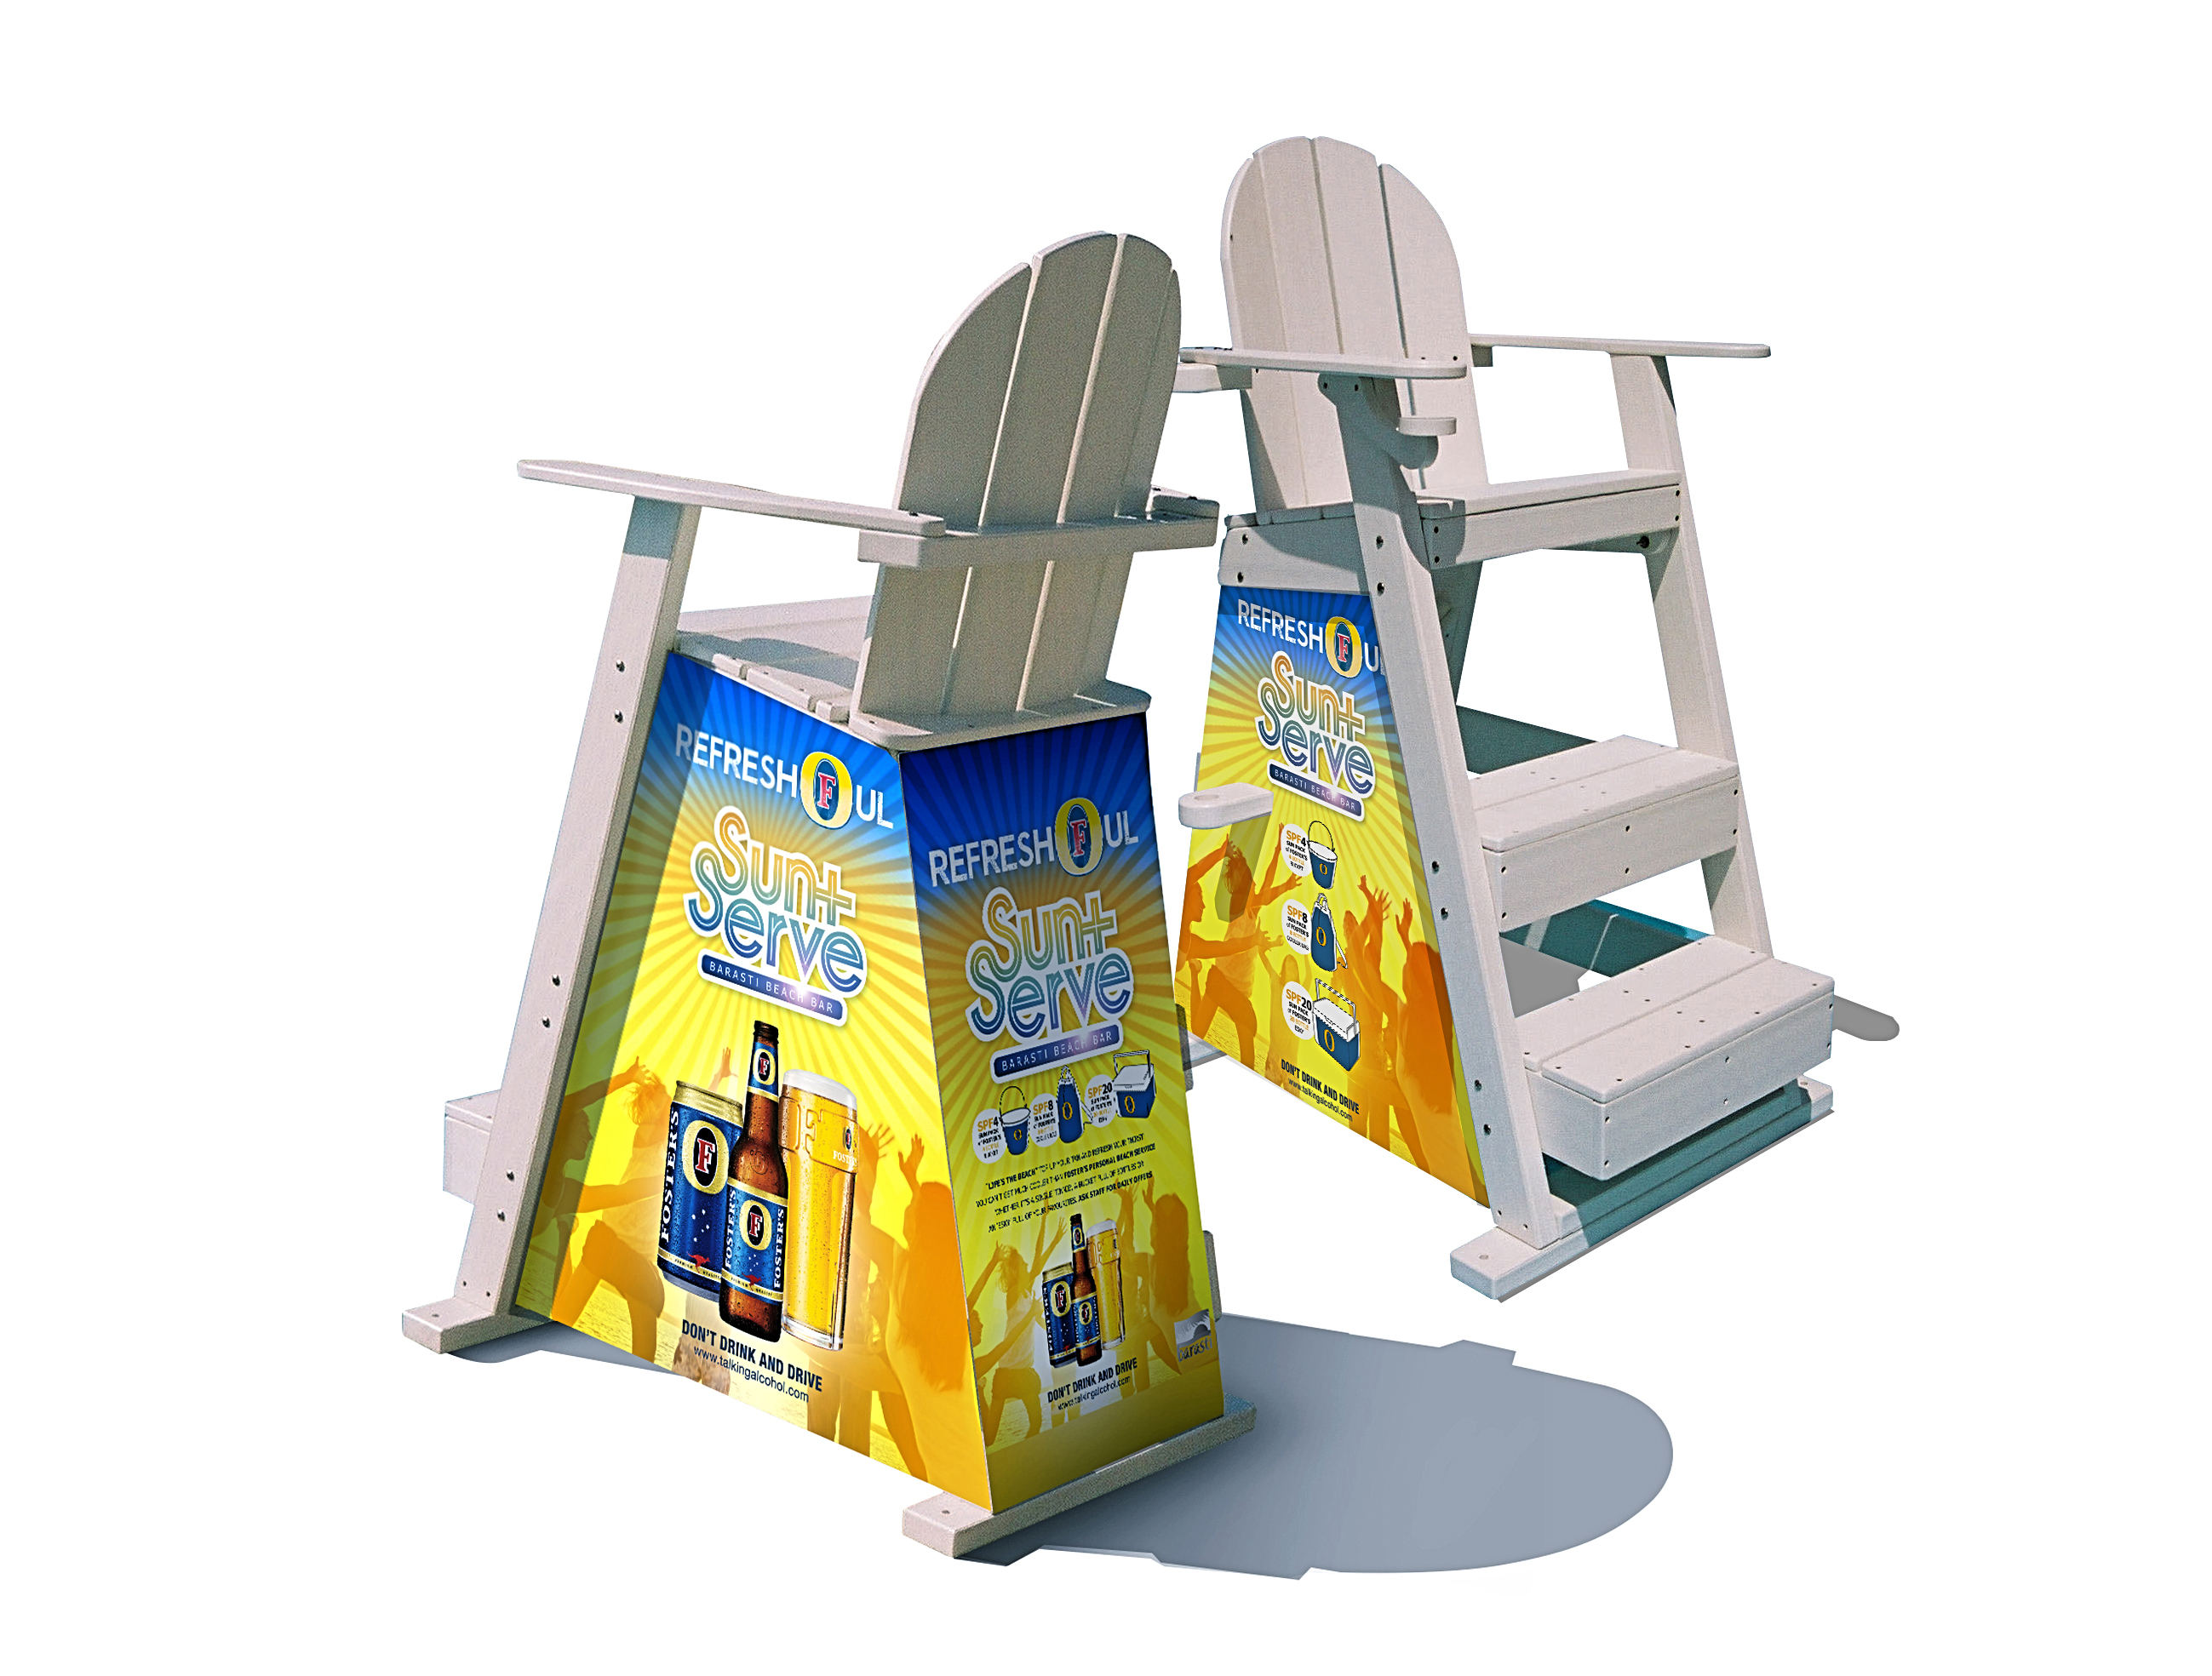 Sun+Serve PROMO lifeguard chair